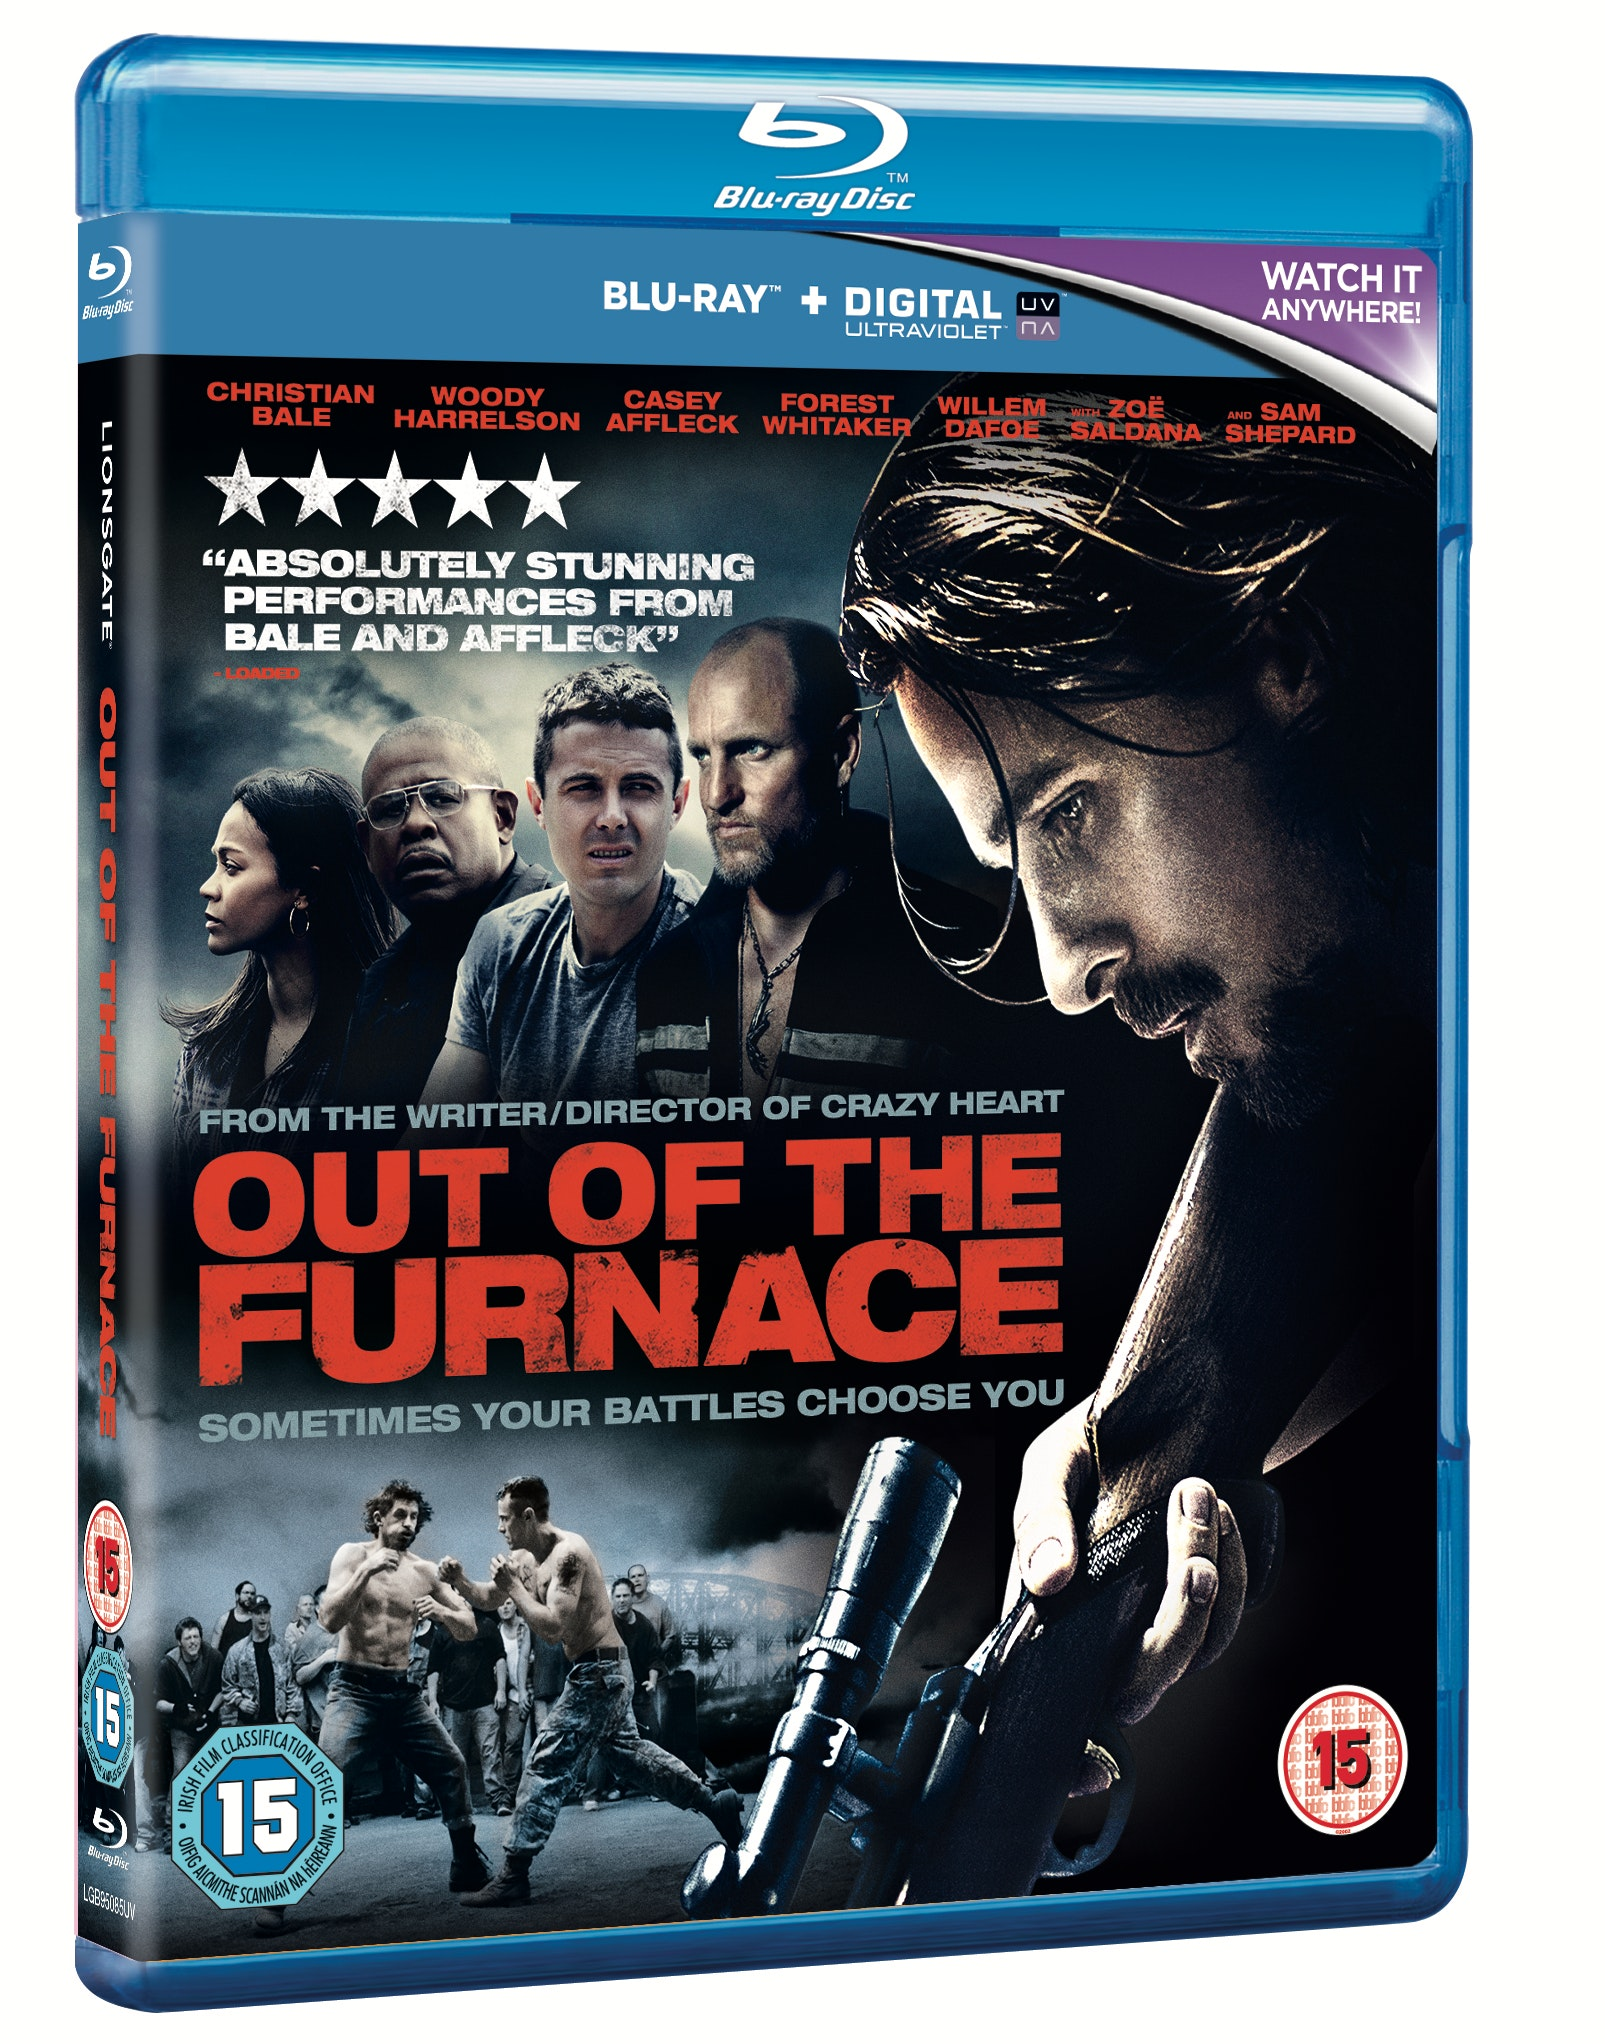 Out of the furnace bd ret uv 3d